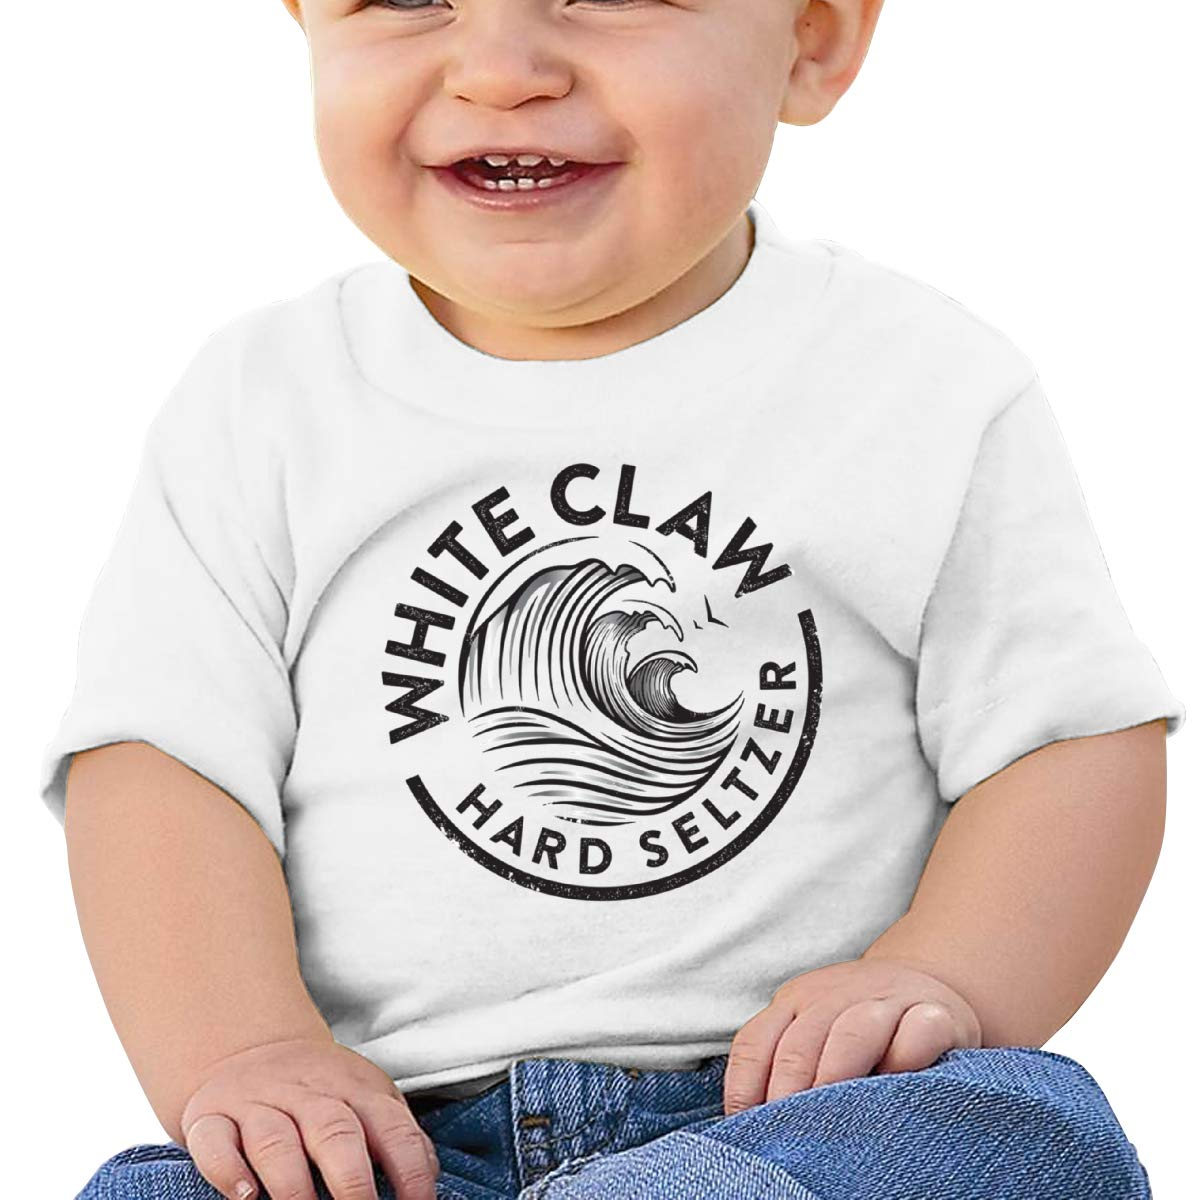 Baby White-Claw Shirt Toddler Cotton Tee